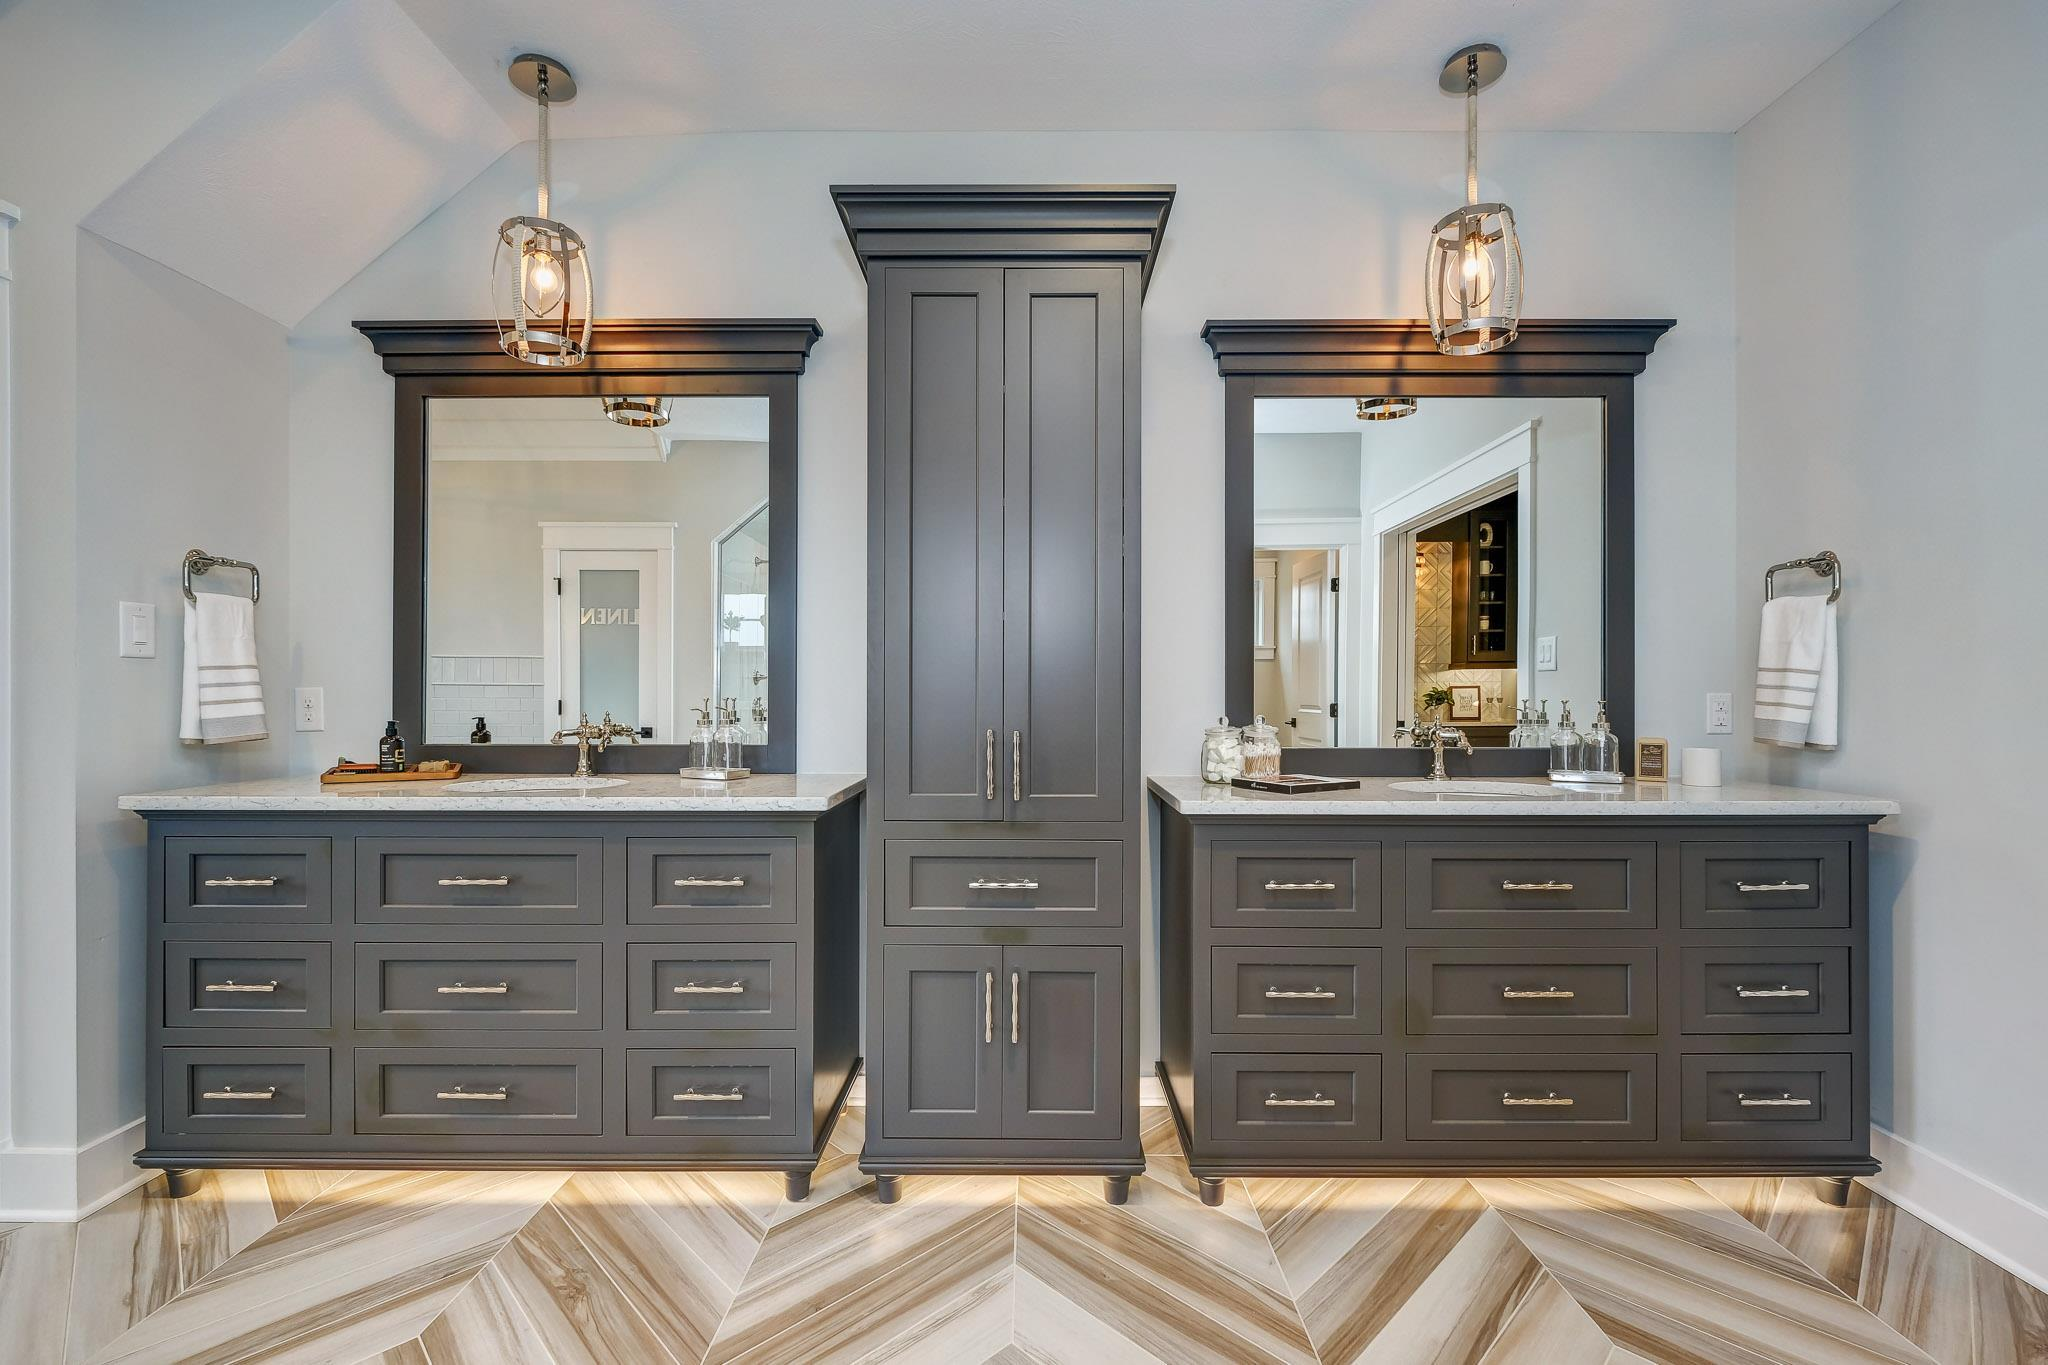 Bathroom featured in the Portland By Infinity Custom Homes in Pittsburgh, PA